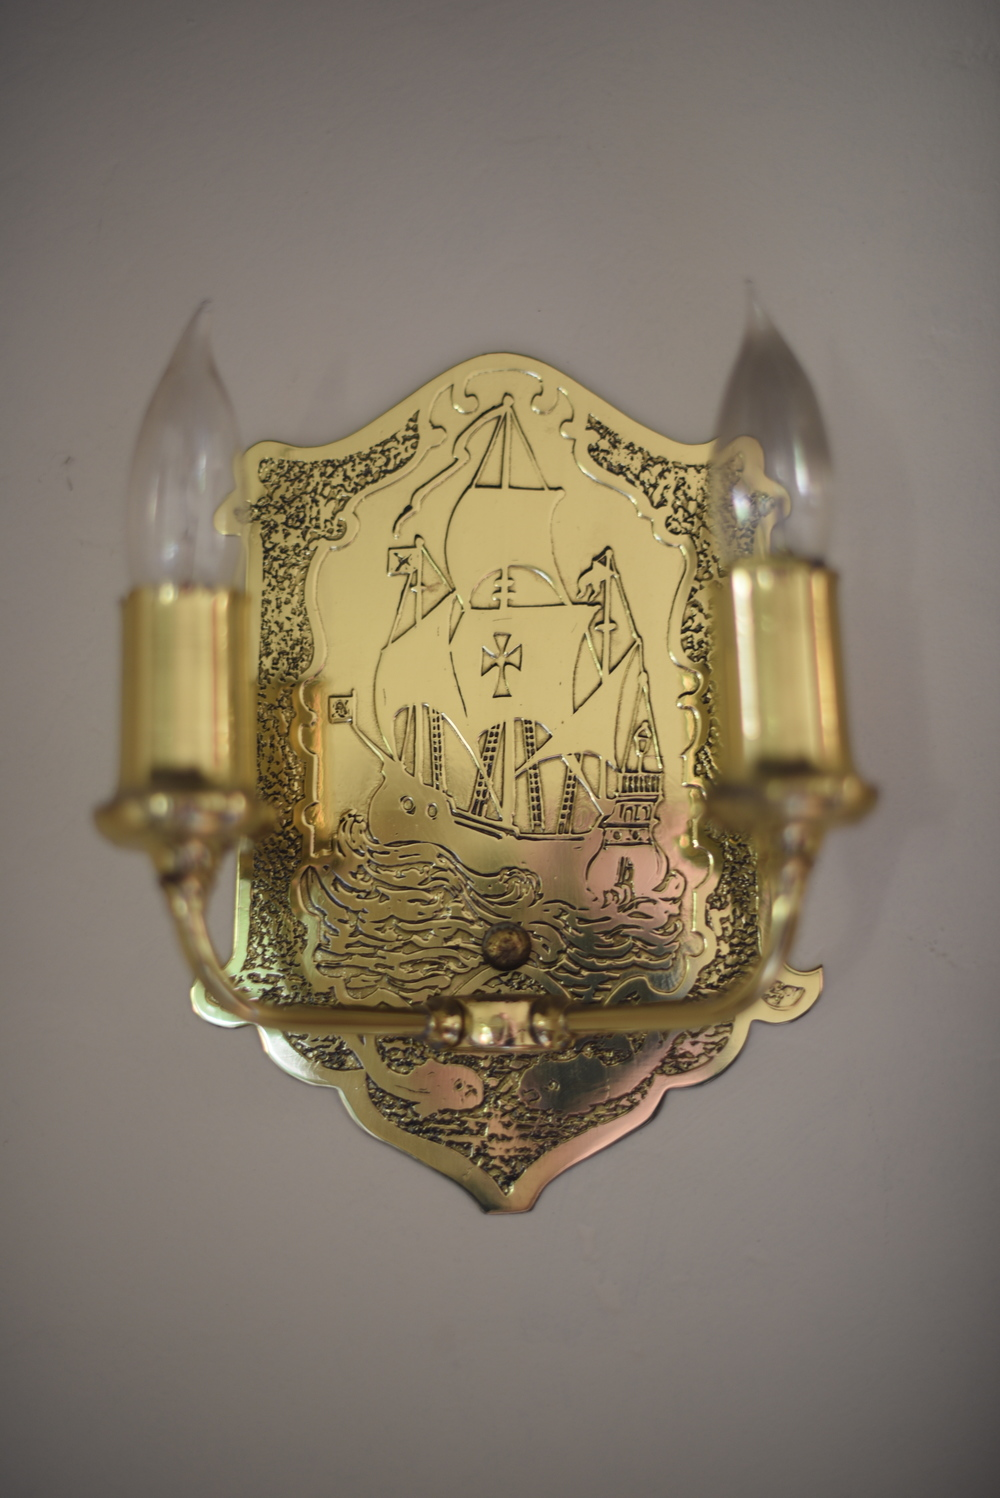 Another feature related to sailing:  Spanish galleons engraved on the lights in our living room.  Each of the four fixtures had a different engraving of a ship.  So cool, I never really noticed. (Or maybe I did notice but it just didn't hit home as much as it does now.)